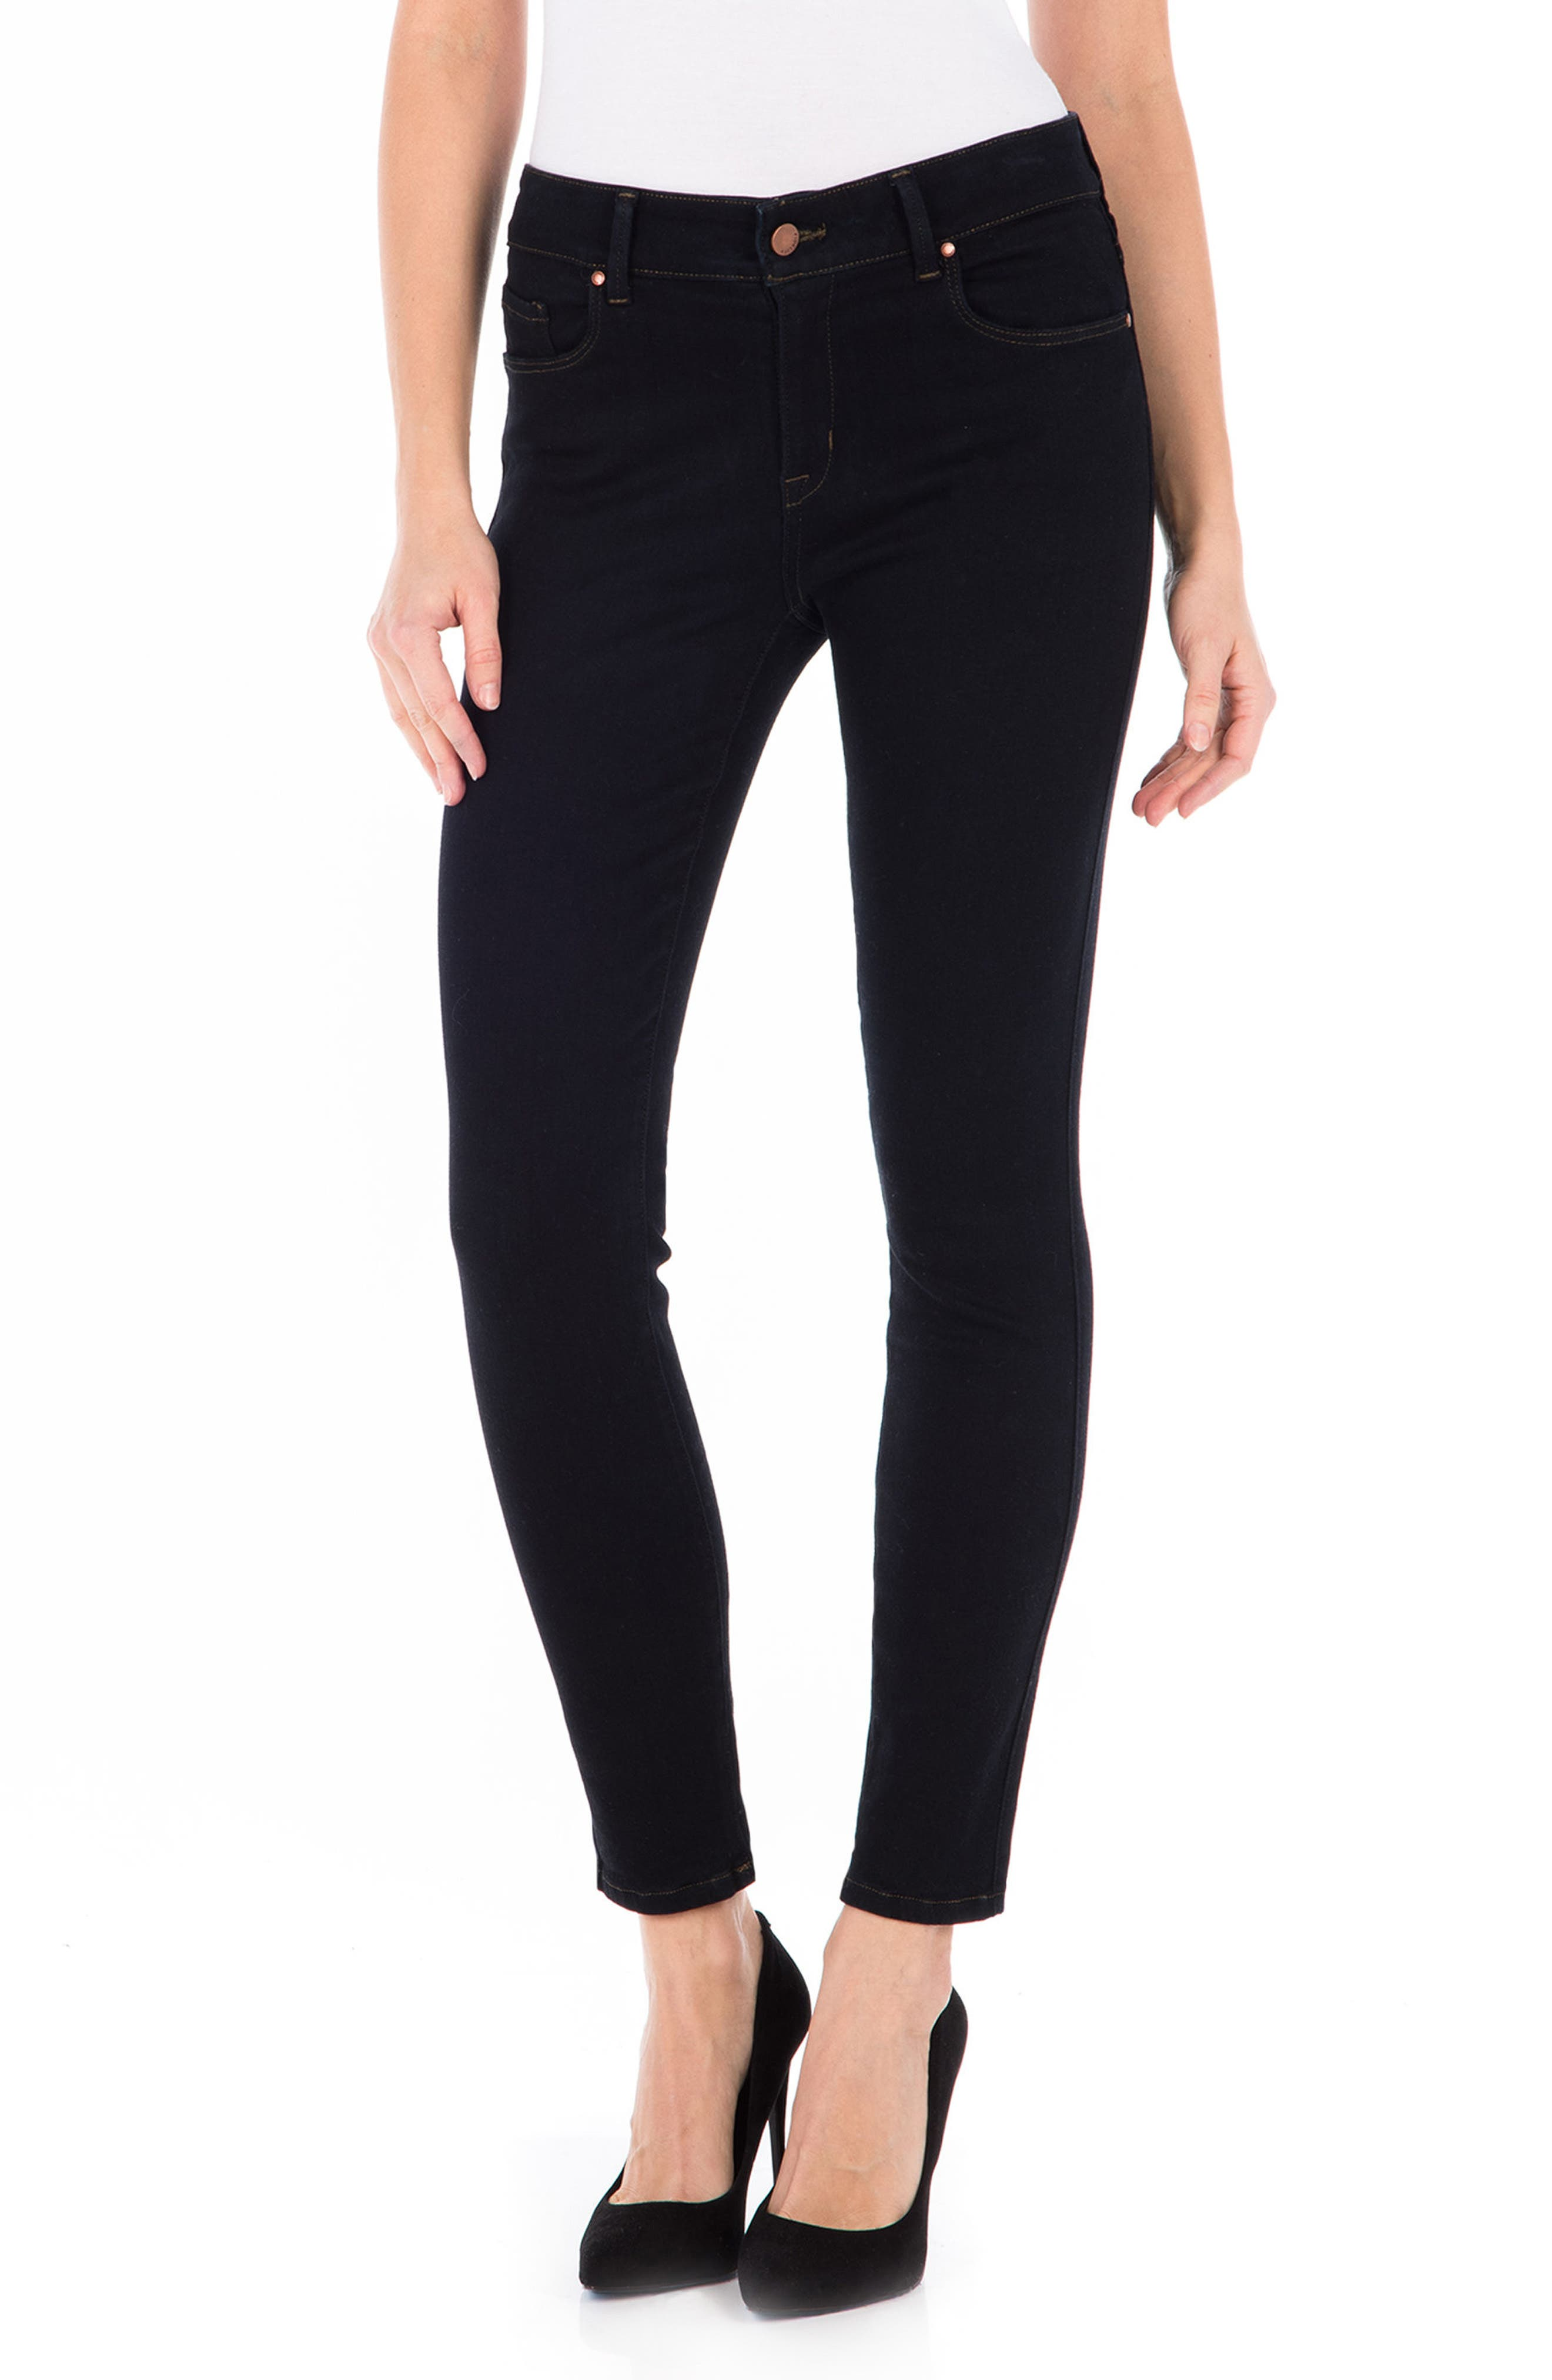 Sola Skinny Jeans,                             Main thumbnail 1, color,                             NAVY NOIR